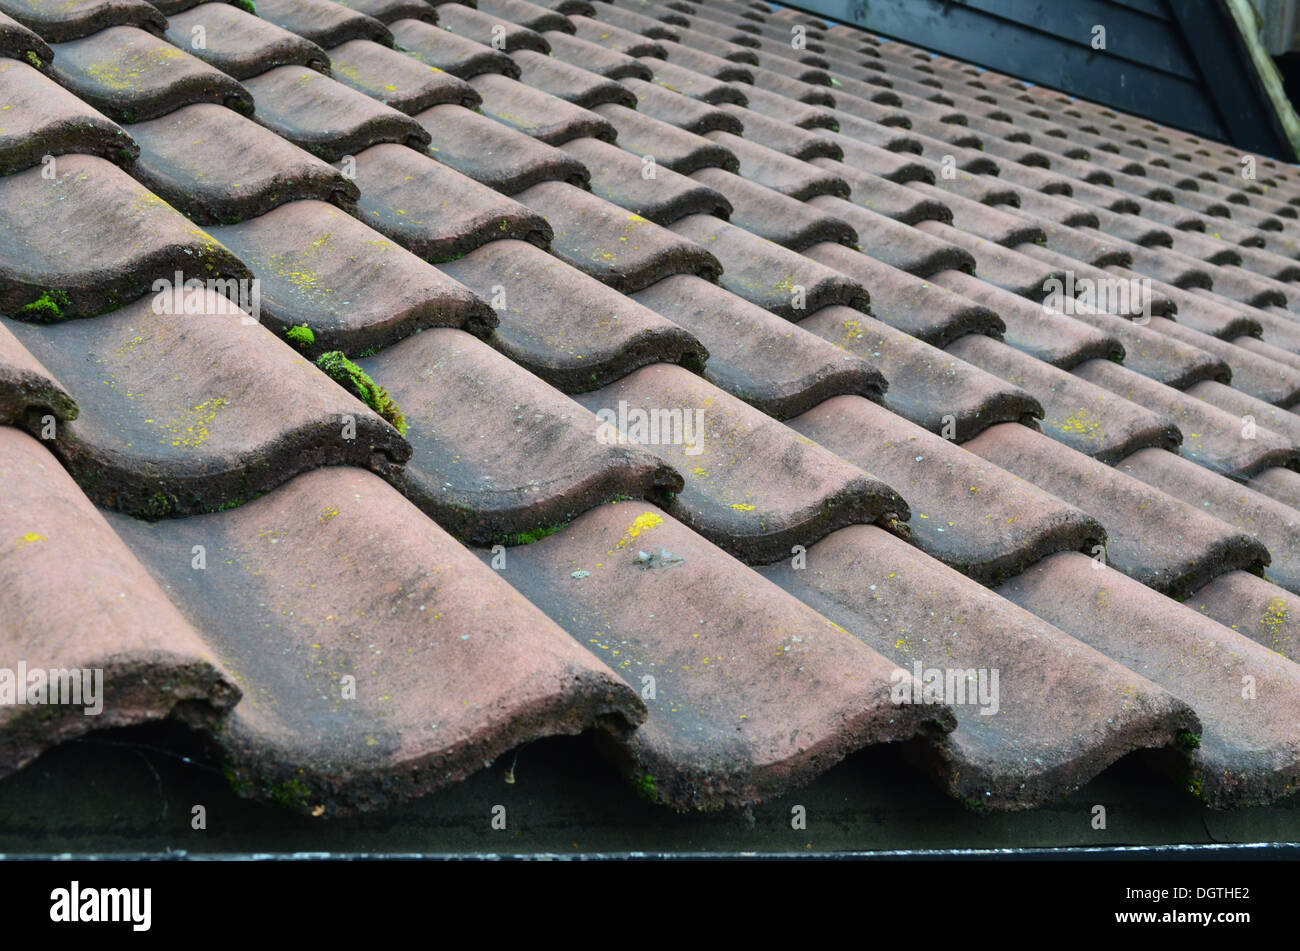 Wavy Clay Roof Tiles Stock Photo Royalty Free Image